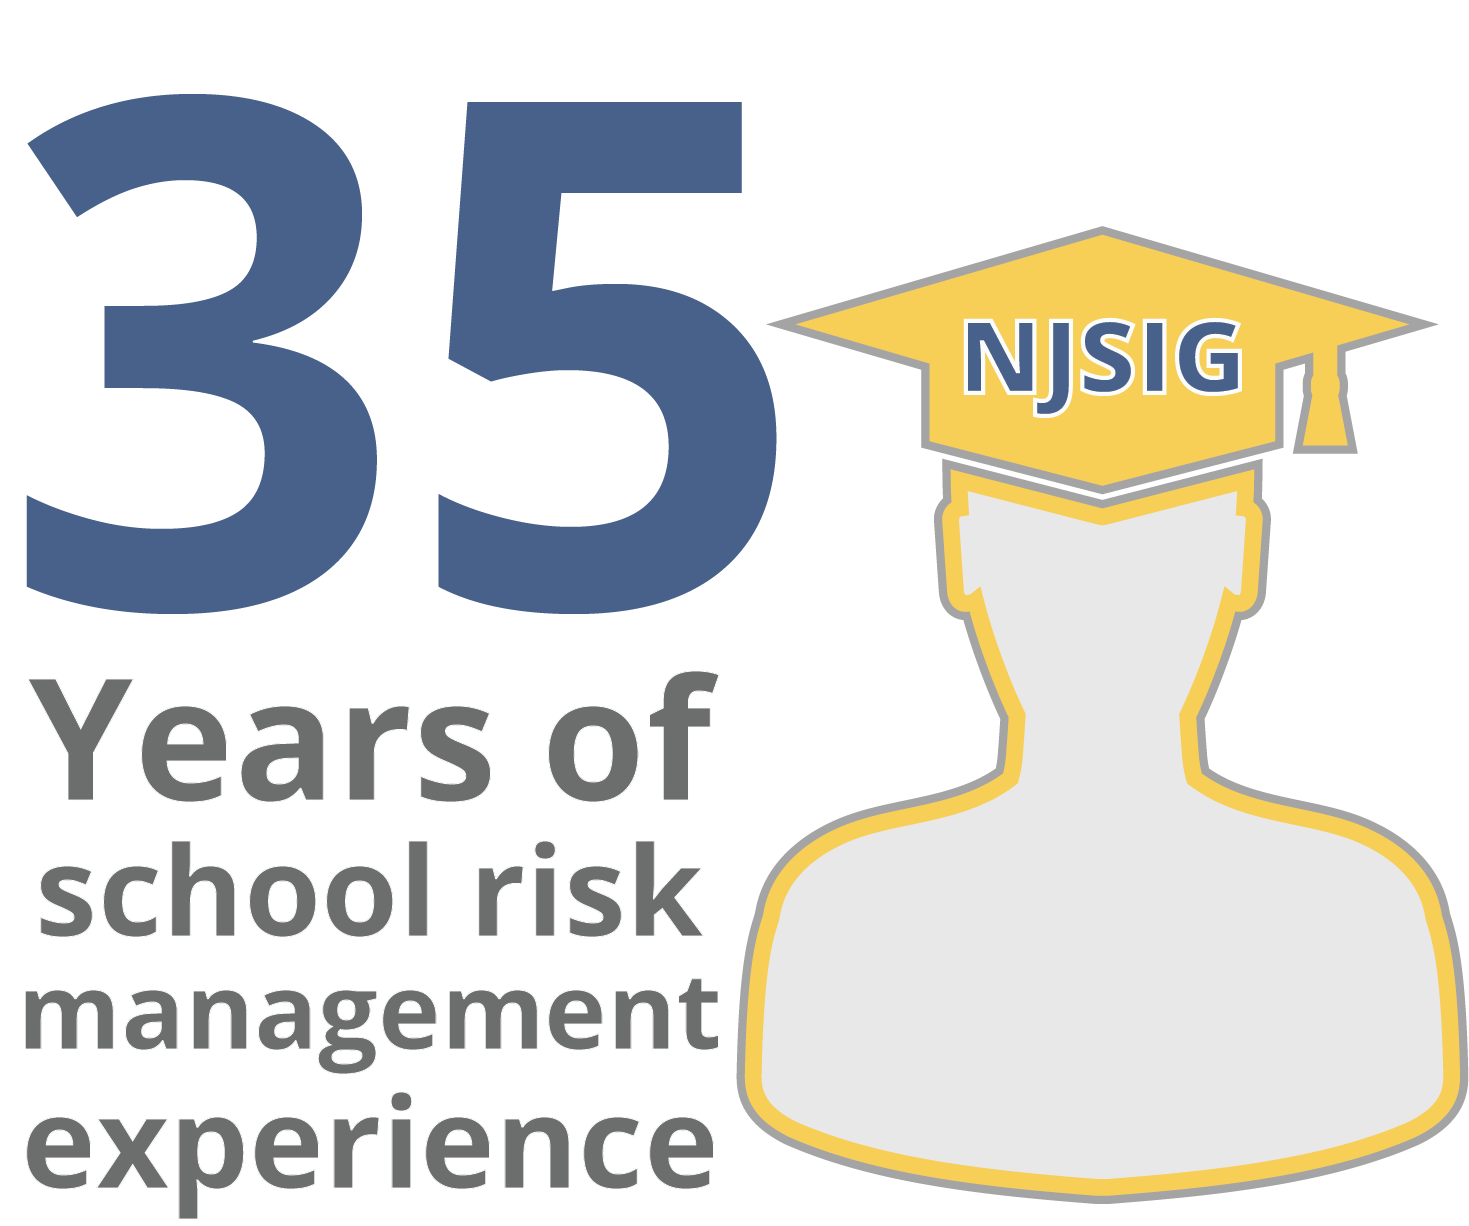 35 Years of experience in school risk management